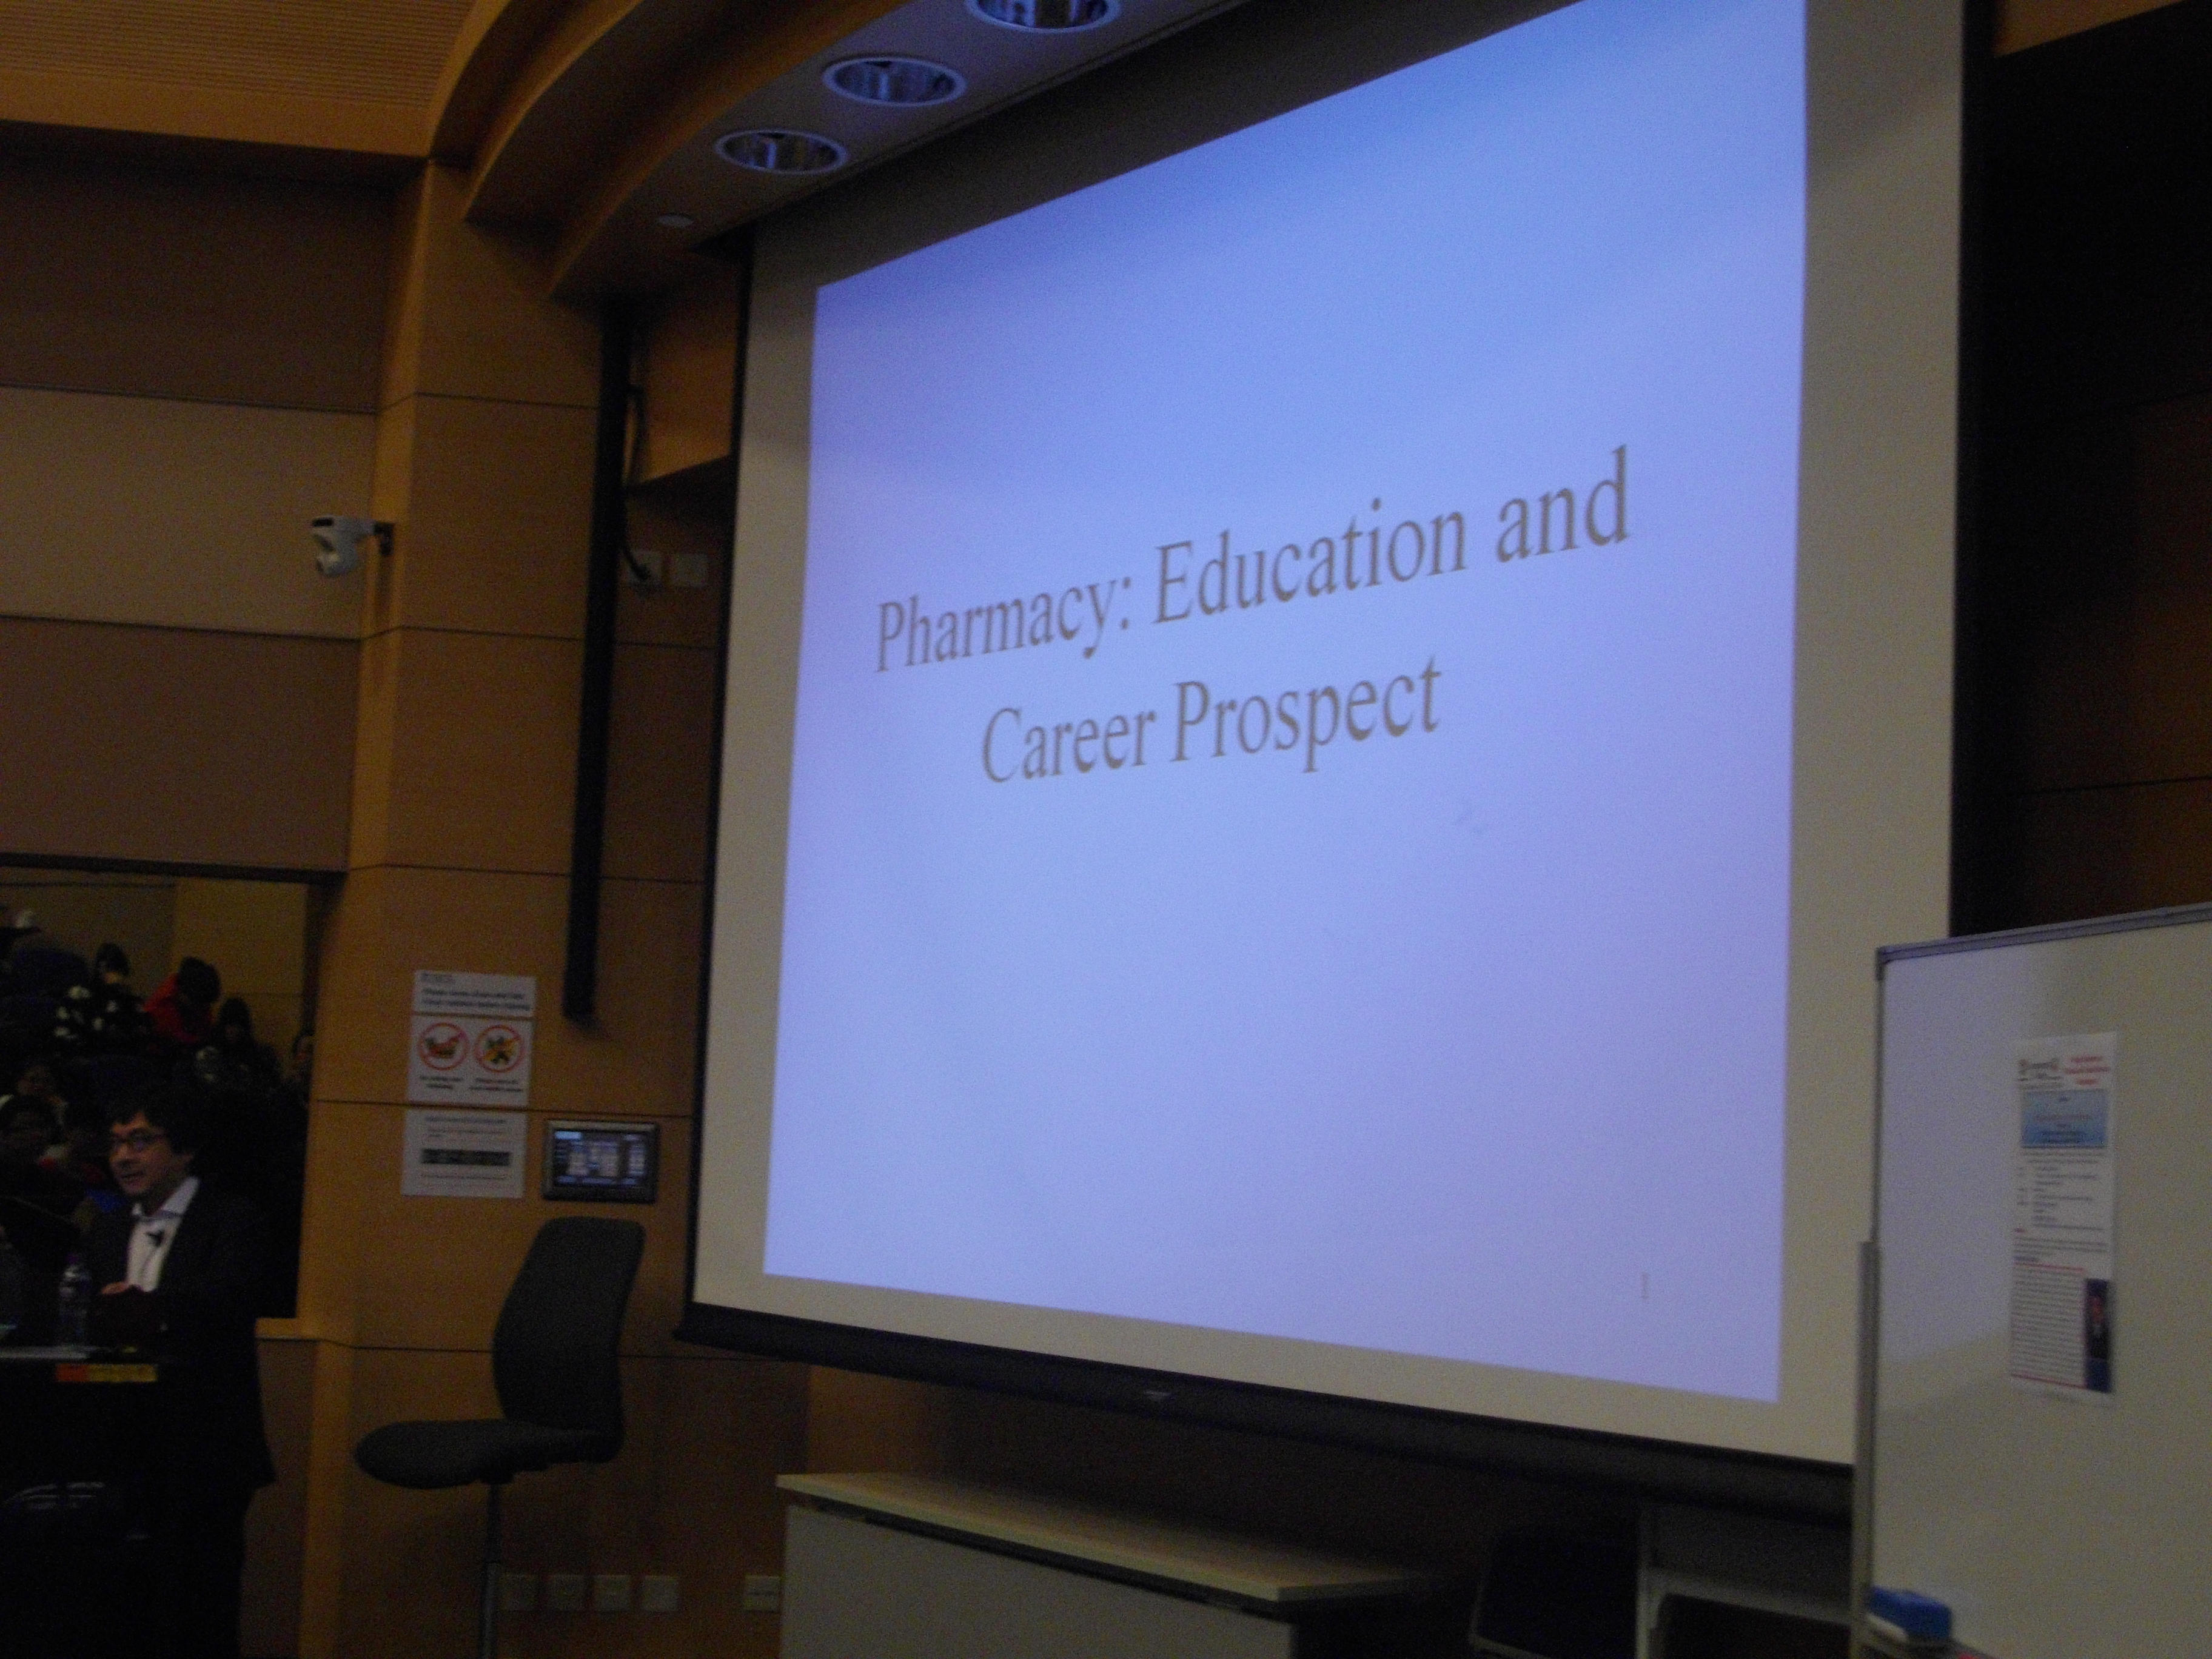 Seminar on Pharmacy: Education and Career Prospects - Photo - 19